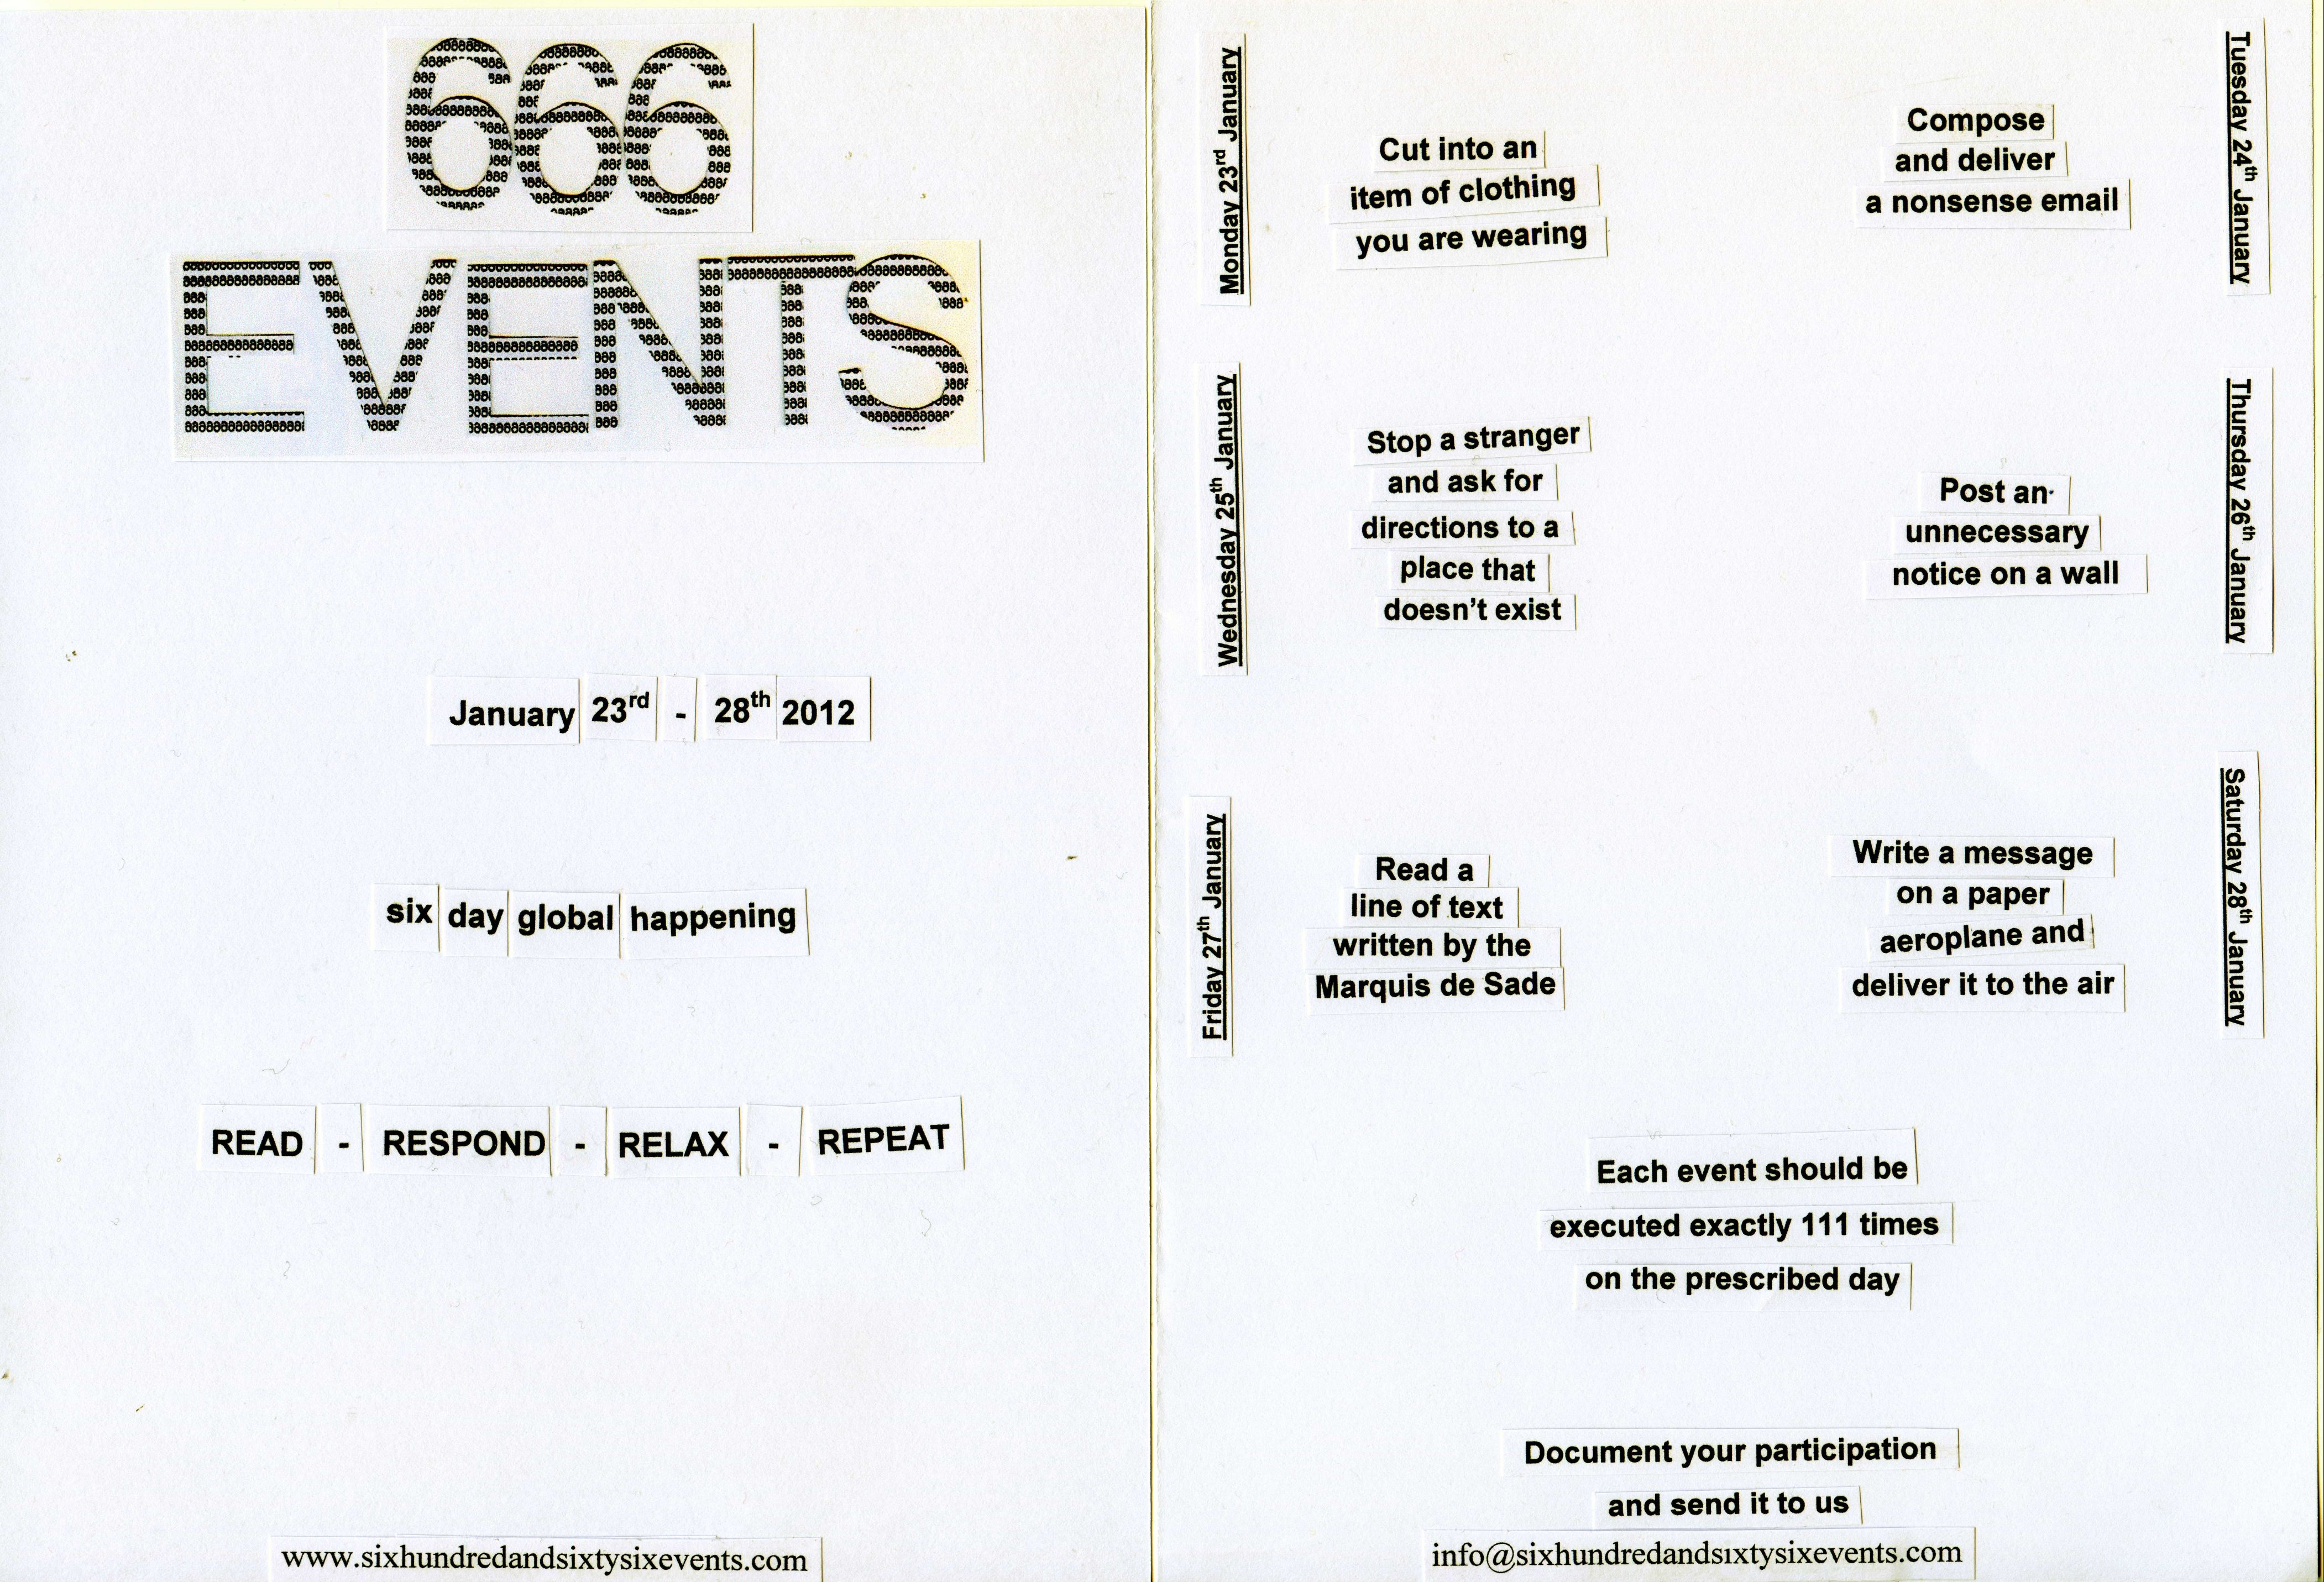 666_events [2010]